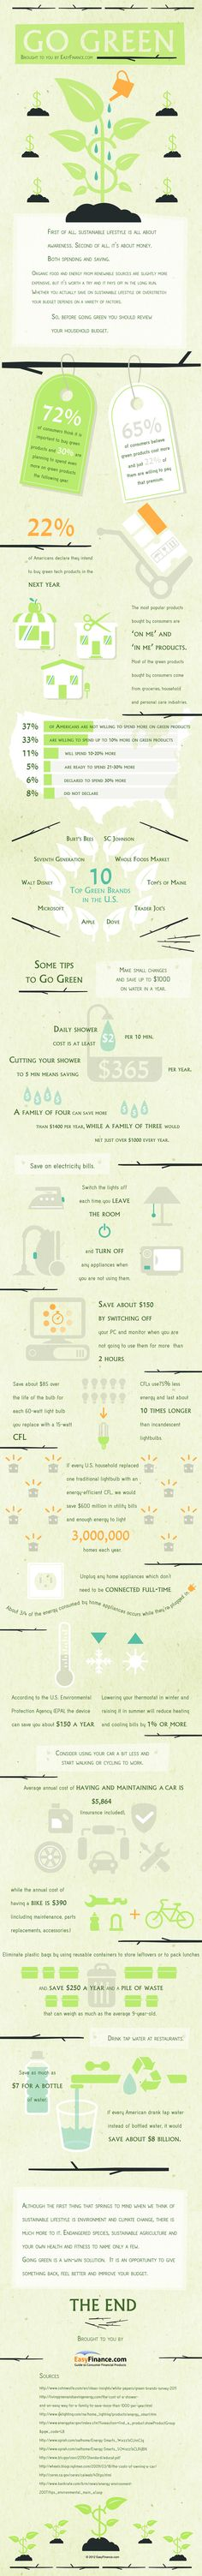 Go Green Infographic from EasyFinance